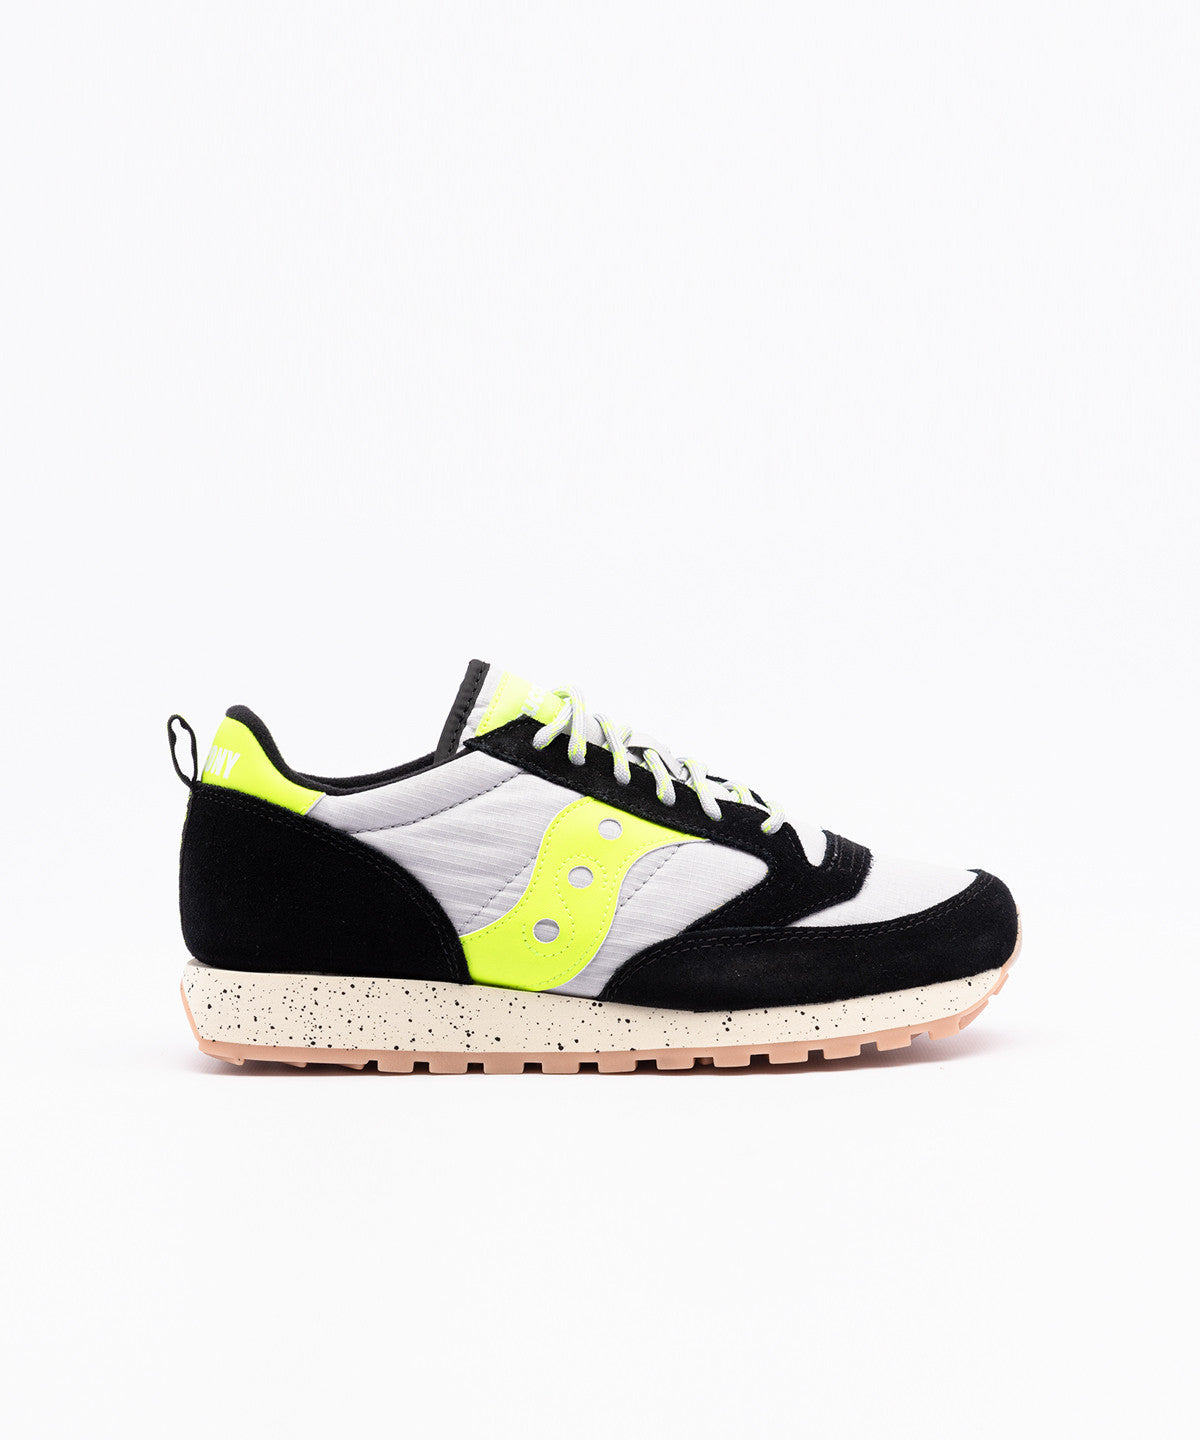 SAUCONY JAZZ ORIGINAL S70463 5